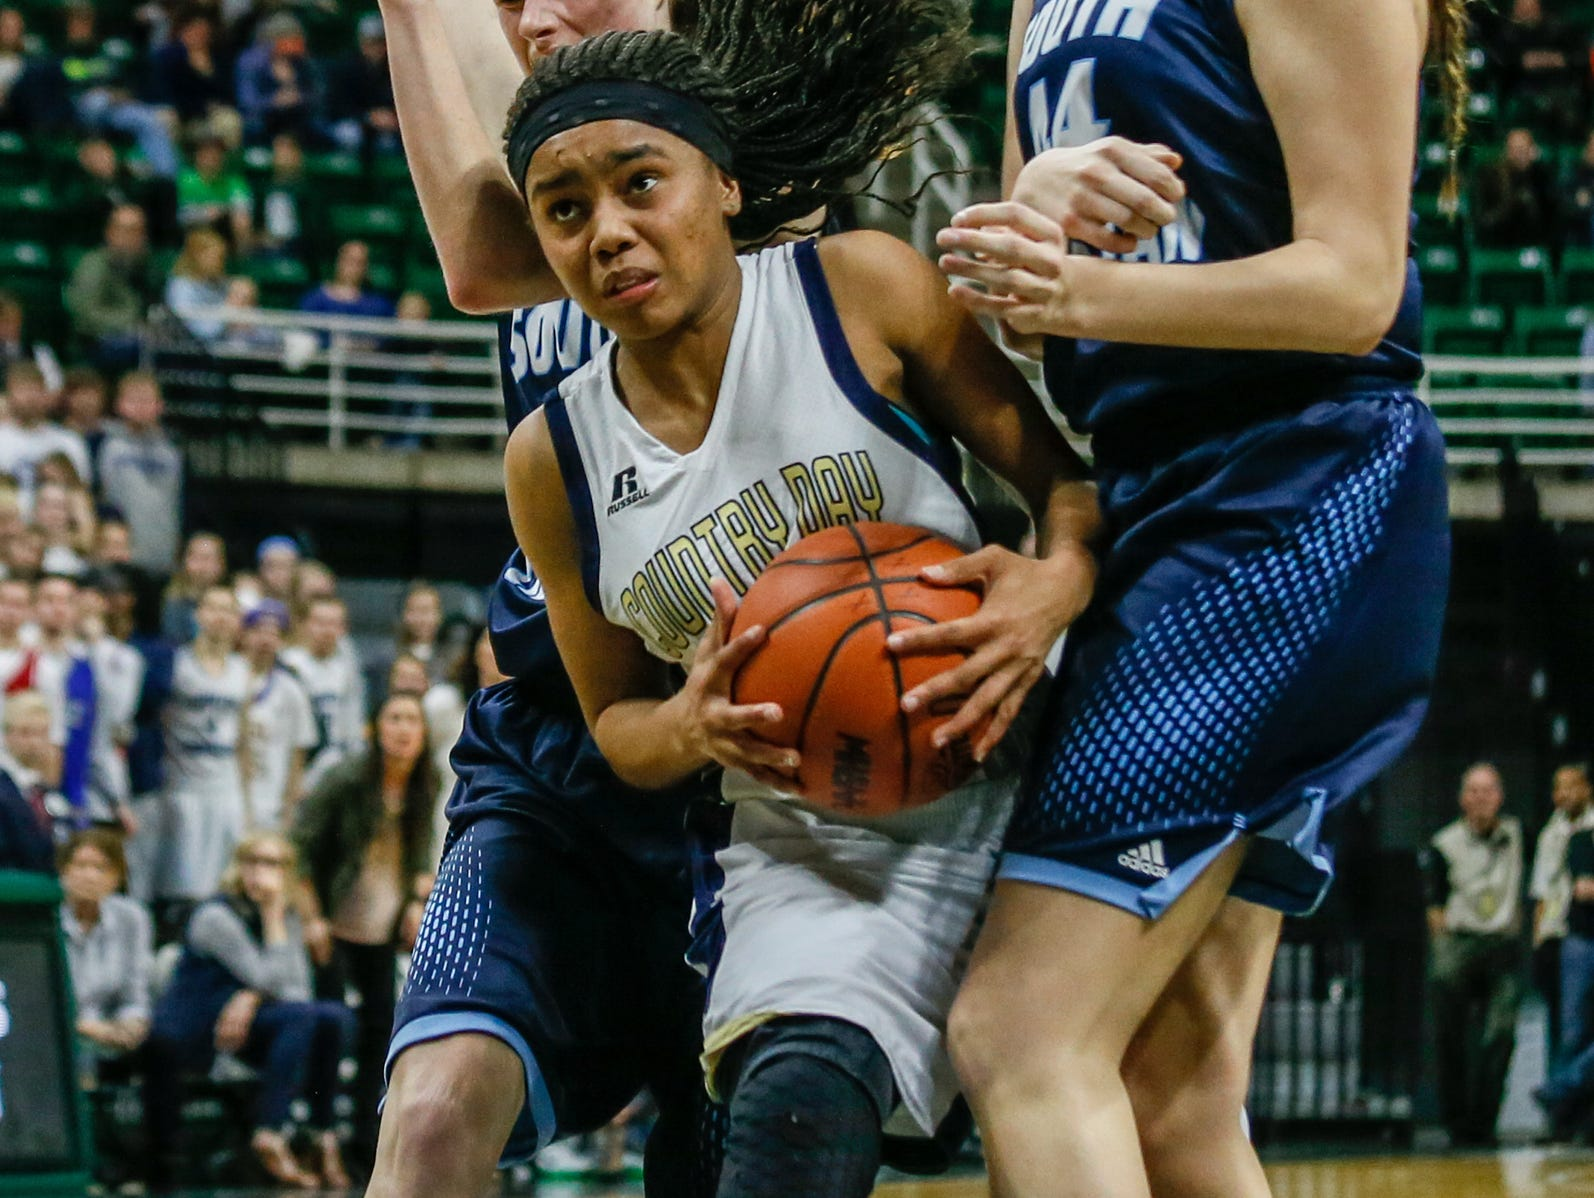 Detroit Country Day's Kaela Webb cuts through Grand Rapids South Christian's Mariel Bruxvoort and Isabella Scott's defense, during the second half of the MHSAA girls basketball Class B game 1 semifinals at the Breslin Center in East Lansing, Mich. on Friday, March 18, 2016.